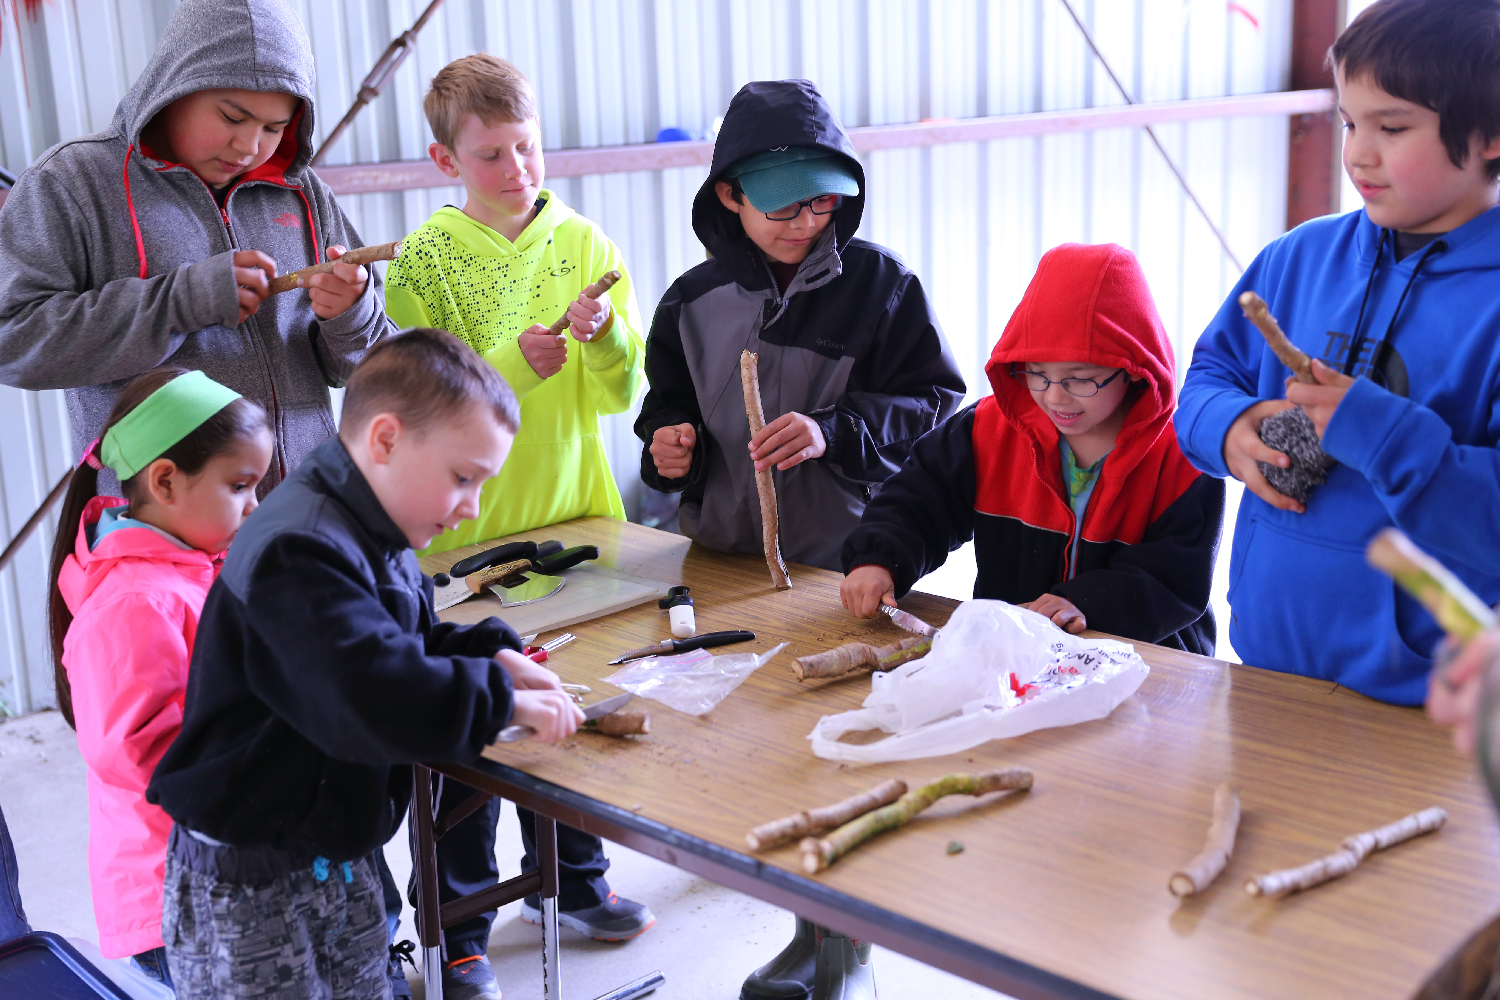 The Hollis students dove right into this project! They are scraping the outer bark off of devil's club sticks, and will peel the inner bark to use in salve making.